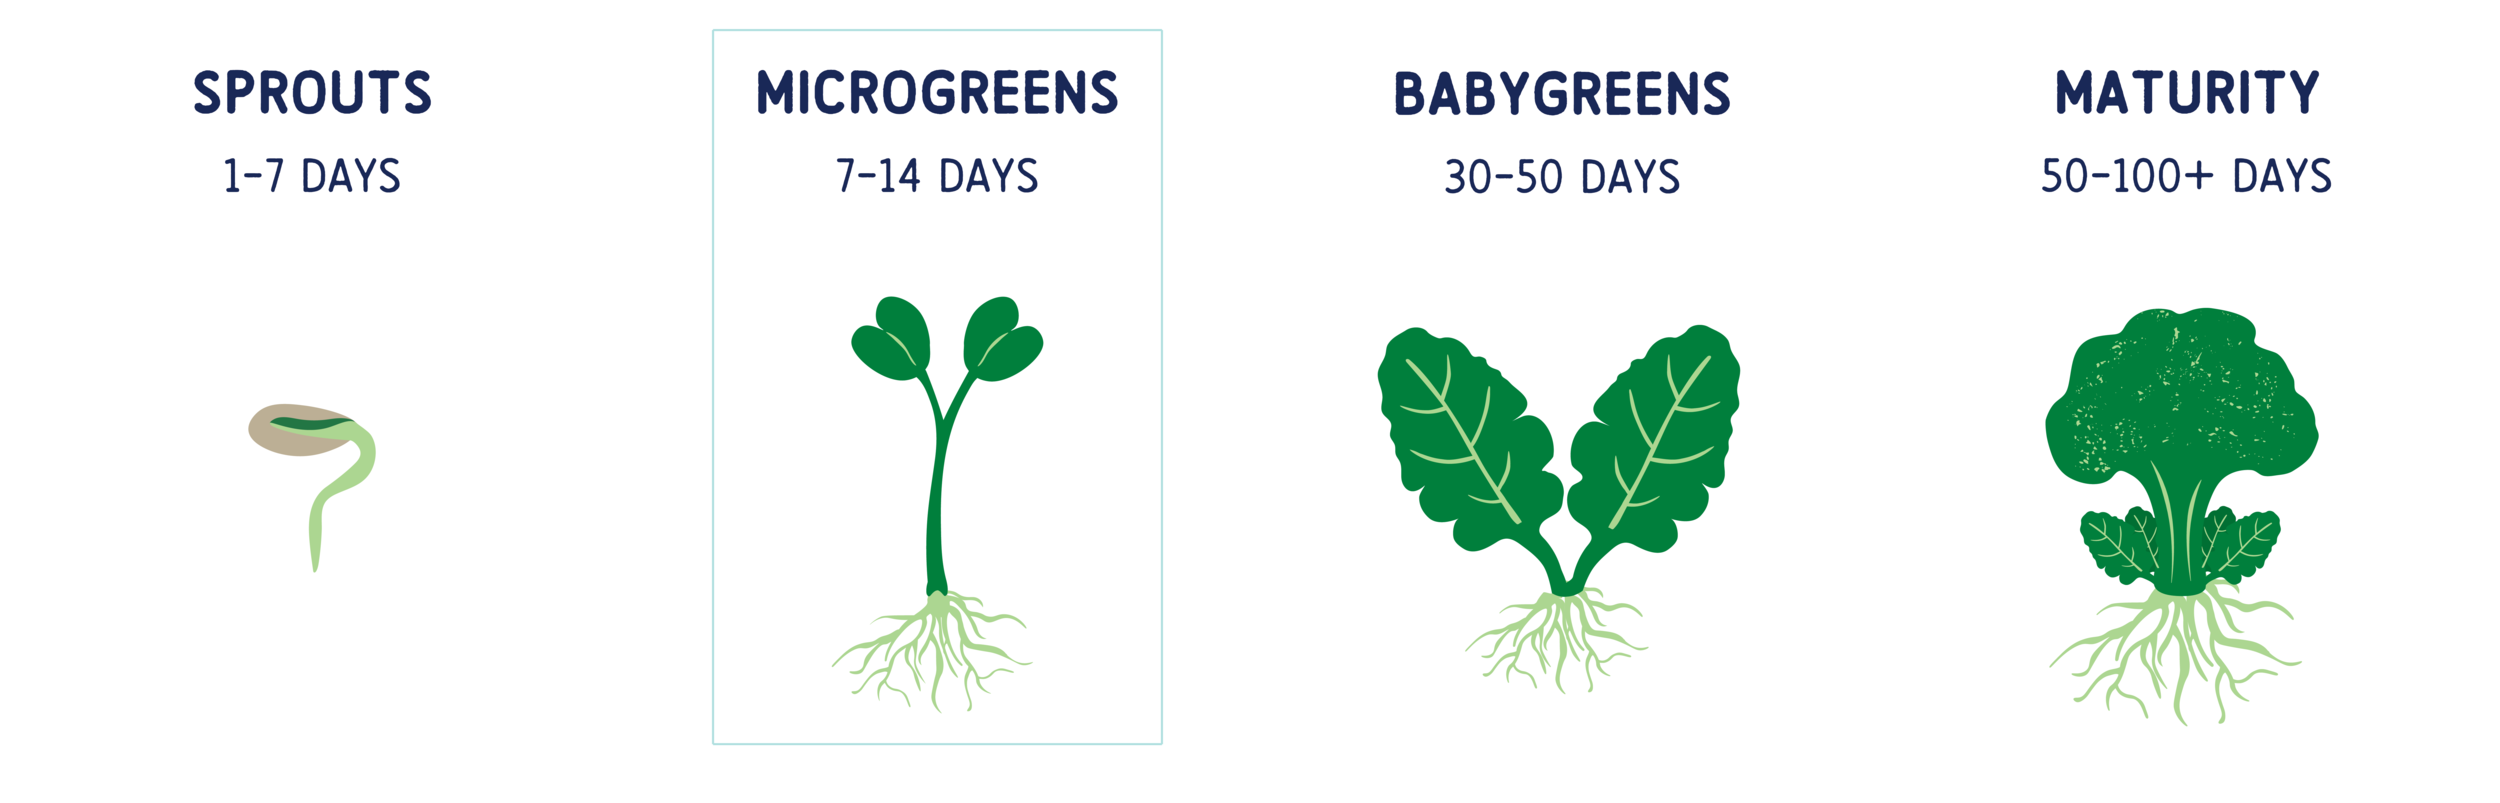 Above is a visualization of the growth cycle of a Broccoli plant from germination to maturity, with the microgreen stage highlighted.